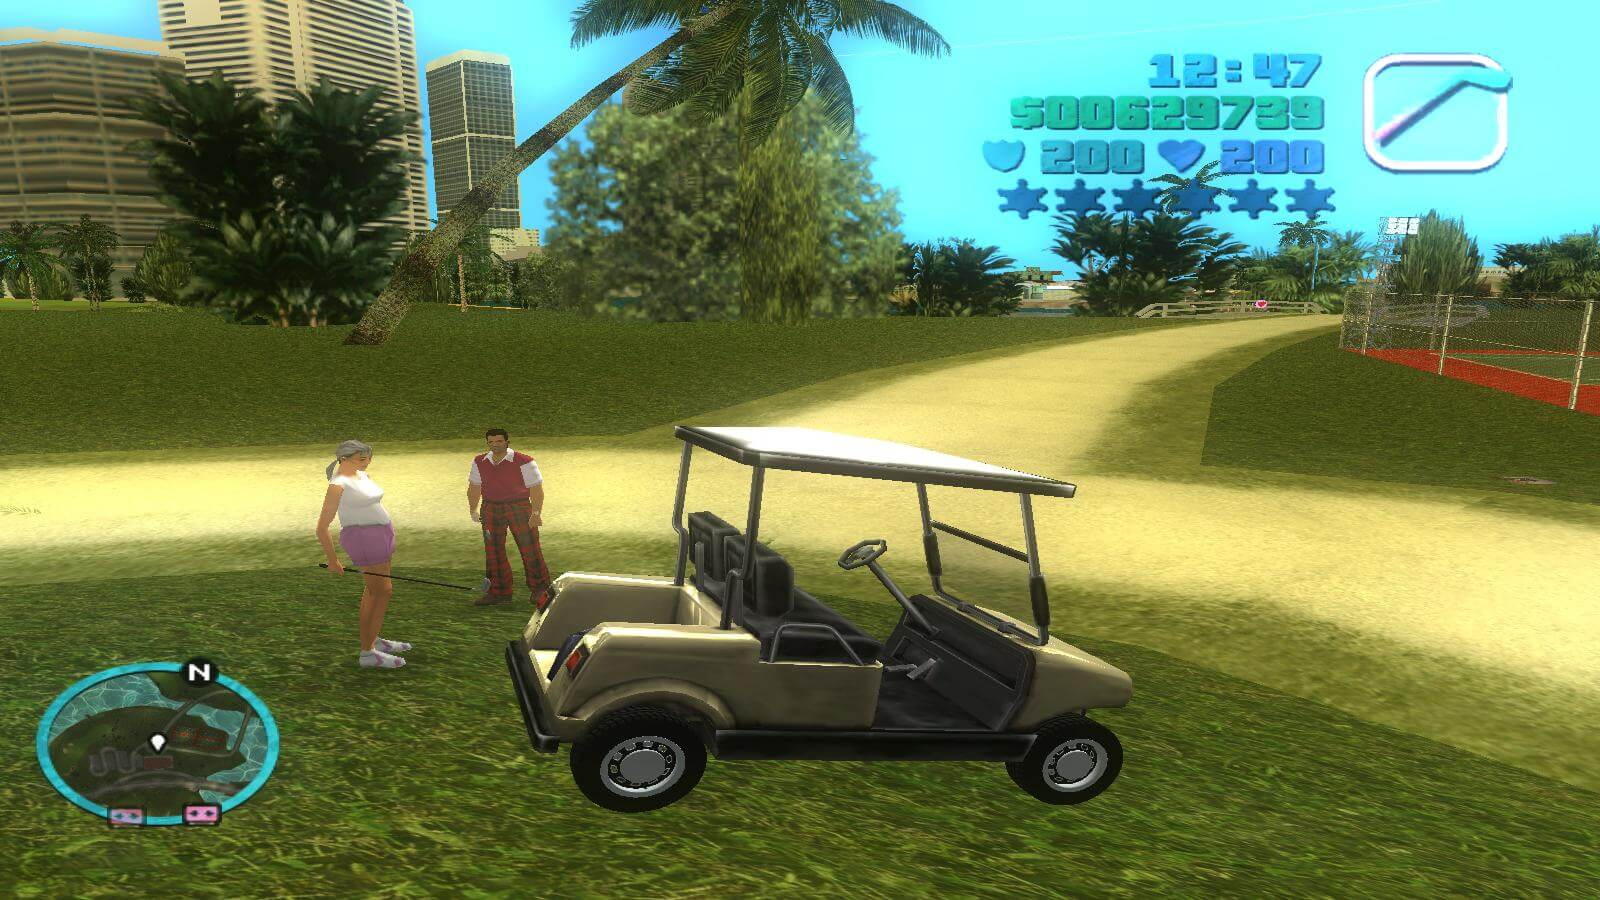 GTA Vice City Modern mod version 1 2 adds new textures and